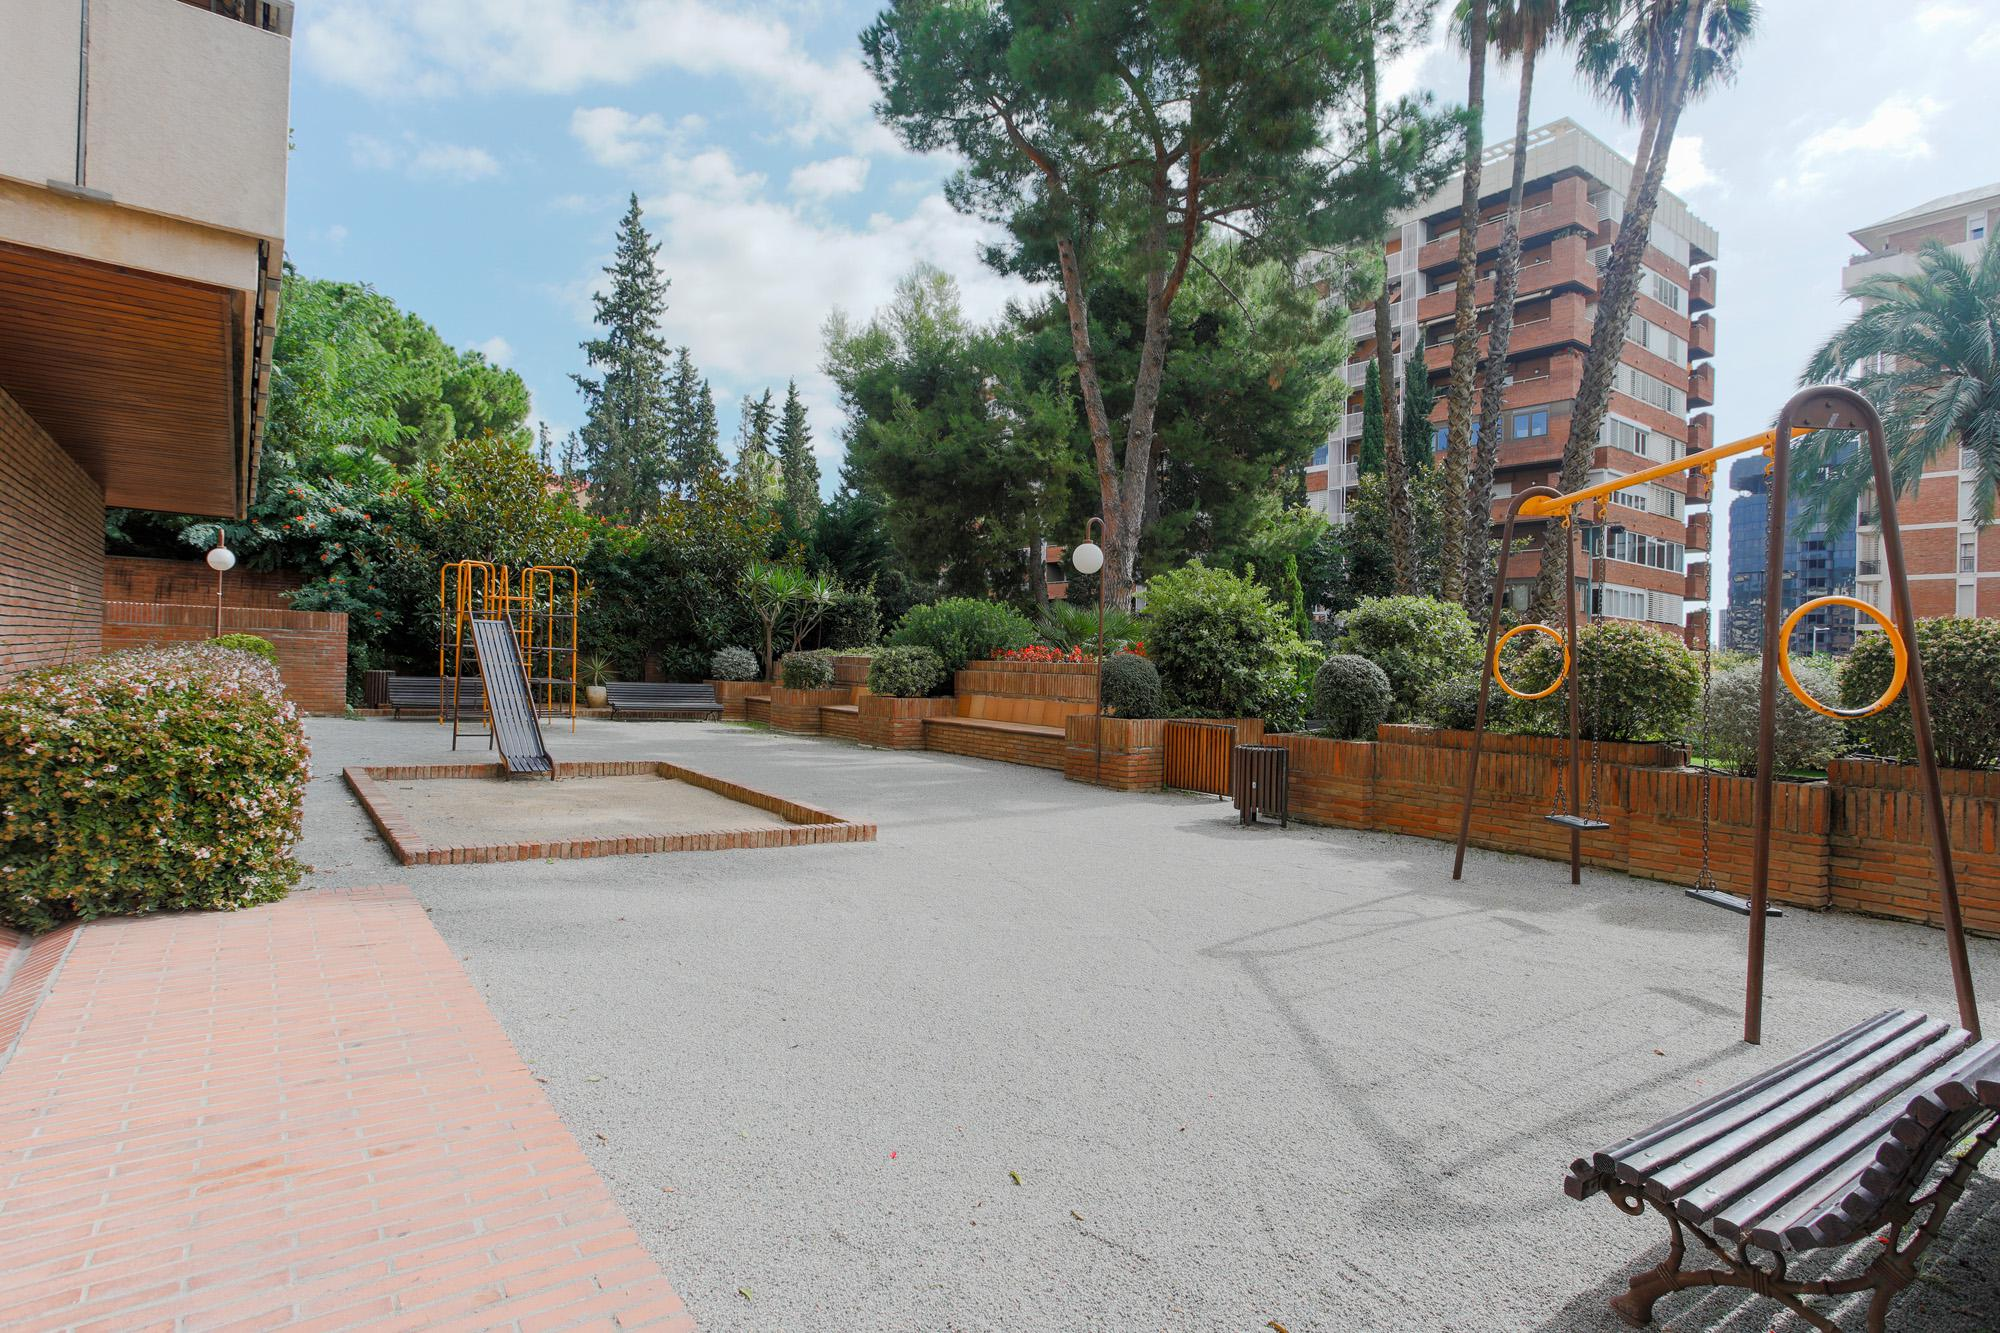 232863 Apartment for sale in Les Corts, Pedralbes 32